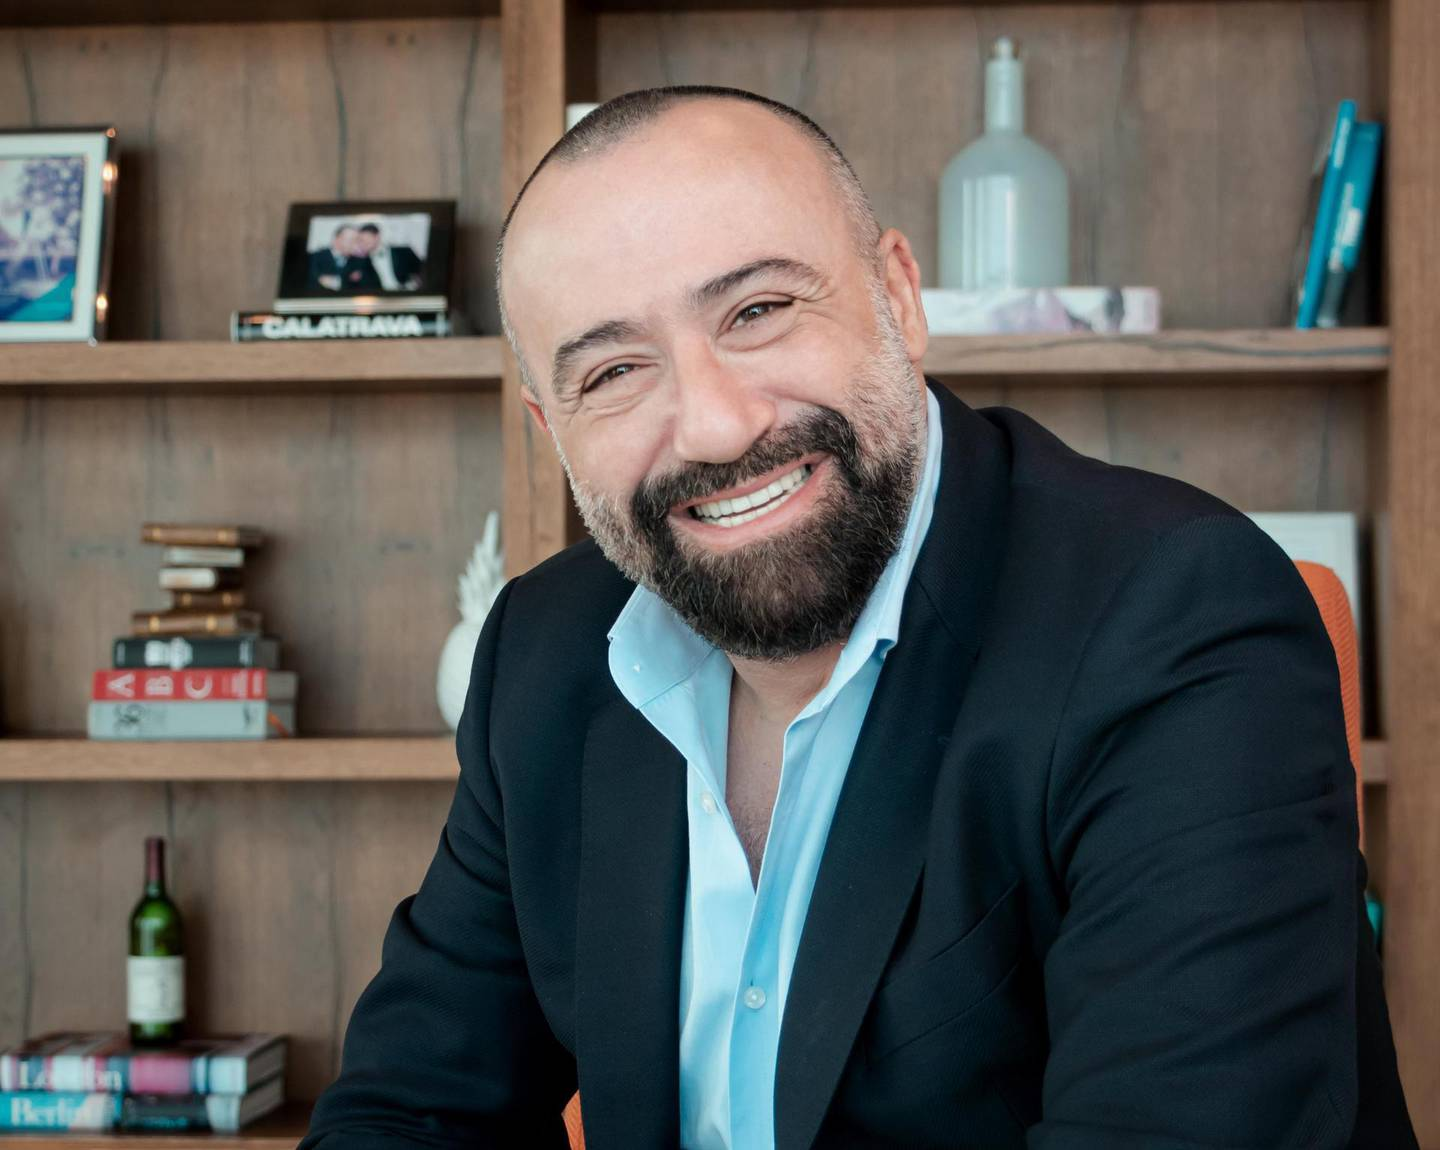 Toufic Kreidieh, the chief executive of BFL Group, which owns the Brands for Less retail chain. Courtesy of BFL Group